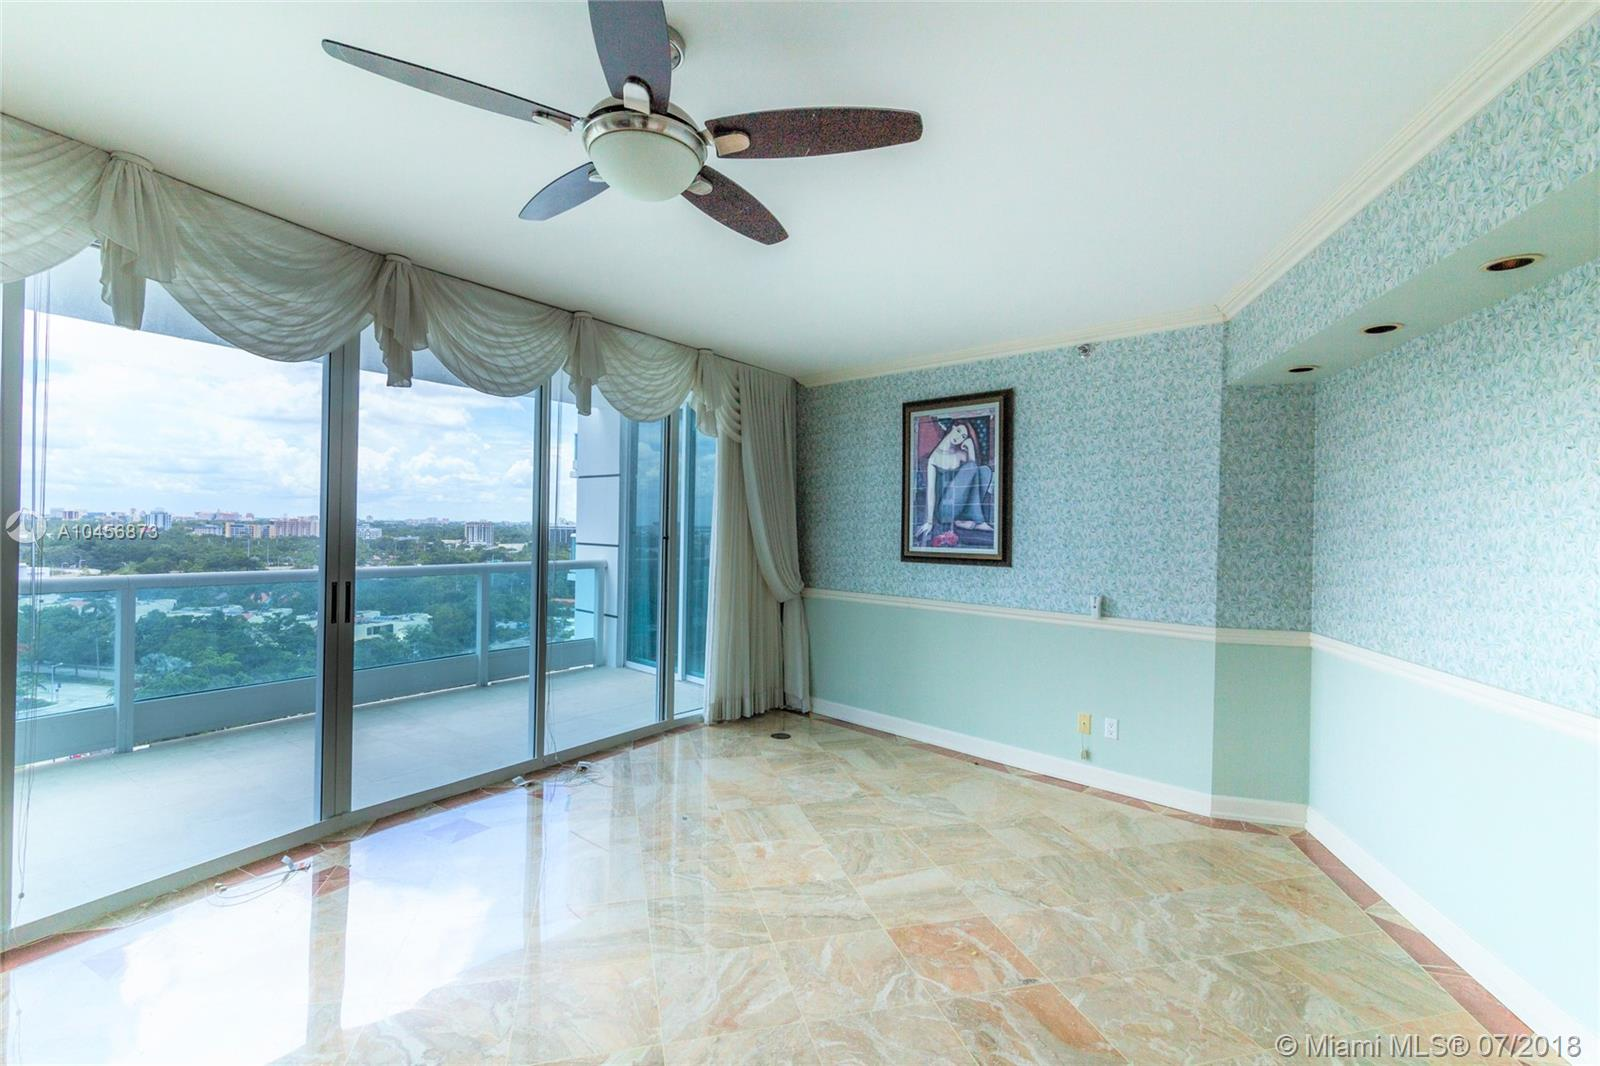 2127 Brickell Avenue, Miami, FL 33129, Bristol Tower Condominium #1702, Brickell, Miami A10456873 image #55